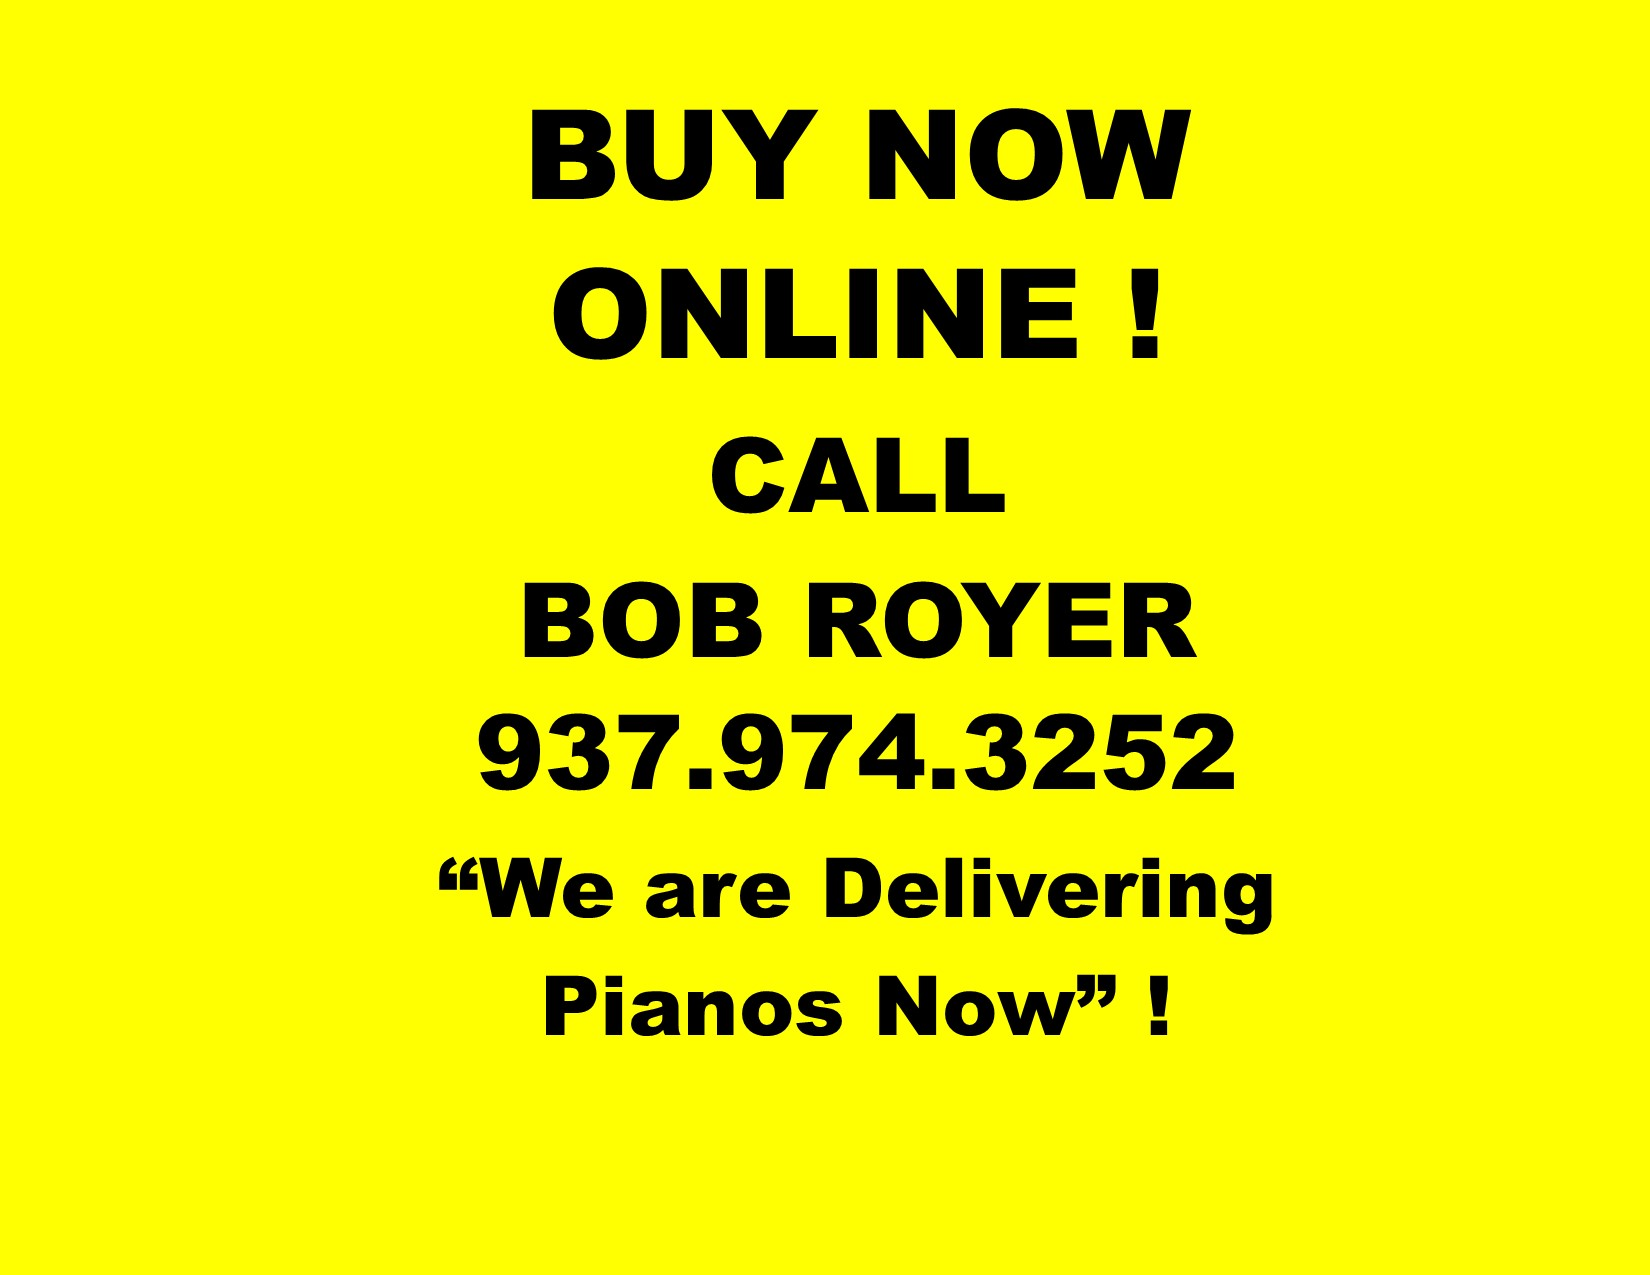 12464-BUY NOW ONLINE ! WE ARE DELIVERING PIANOS NOW !